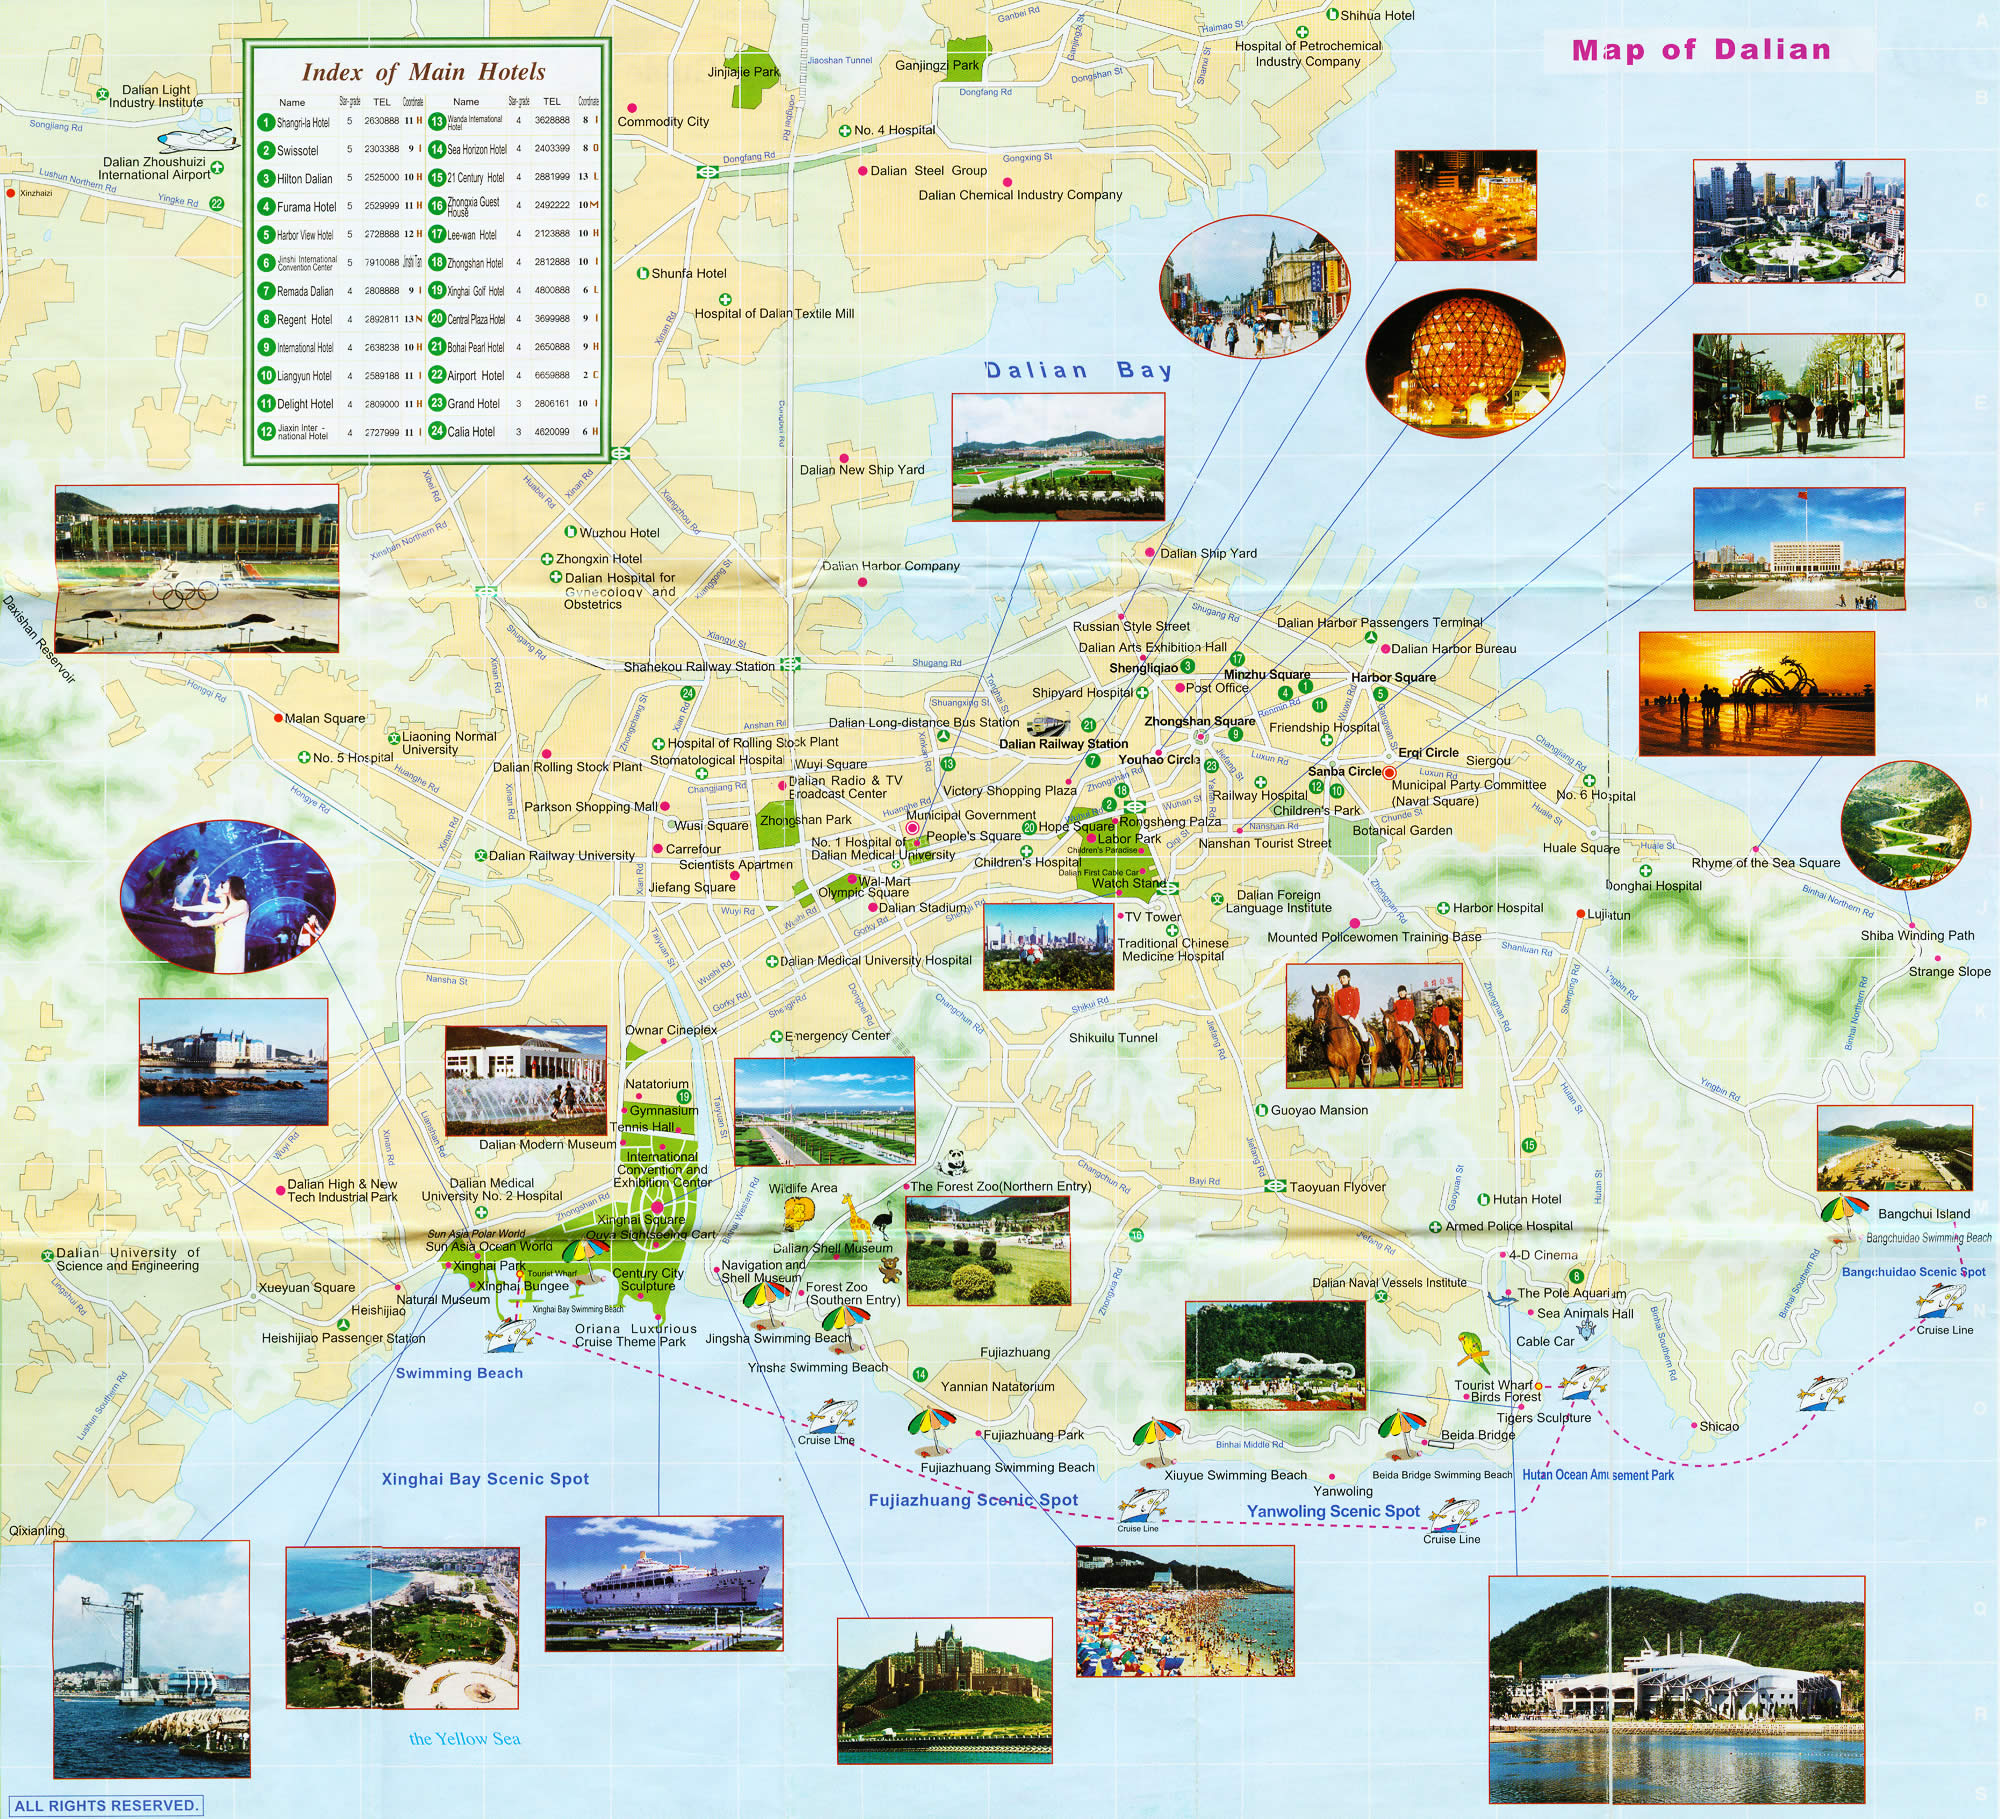 Dalian Tourist Map Dalian Maps China Tour Advisors